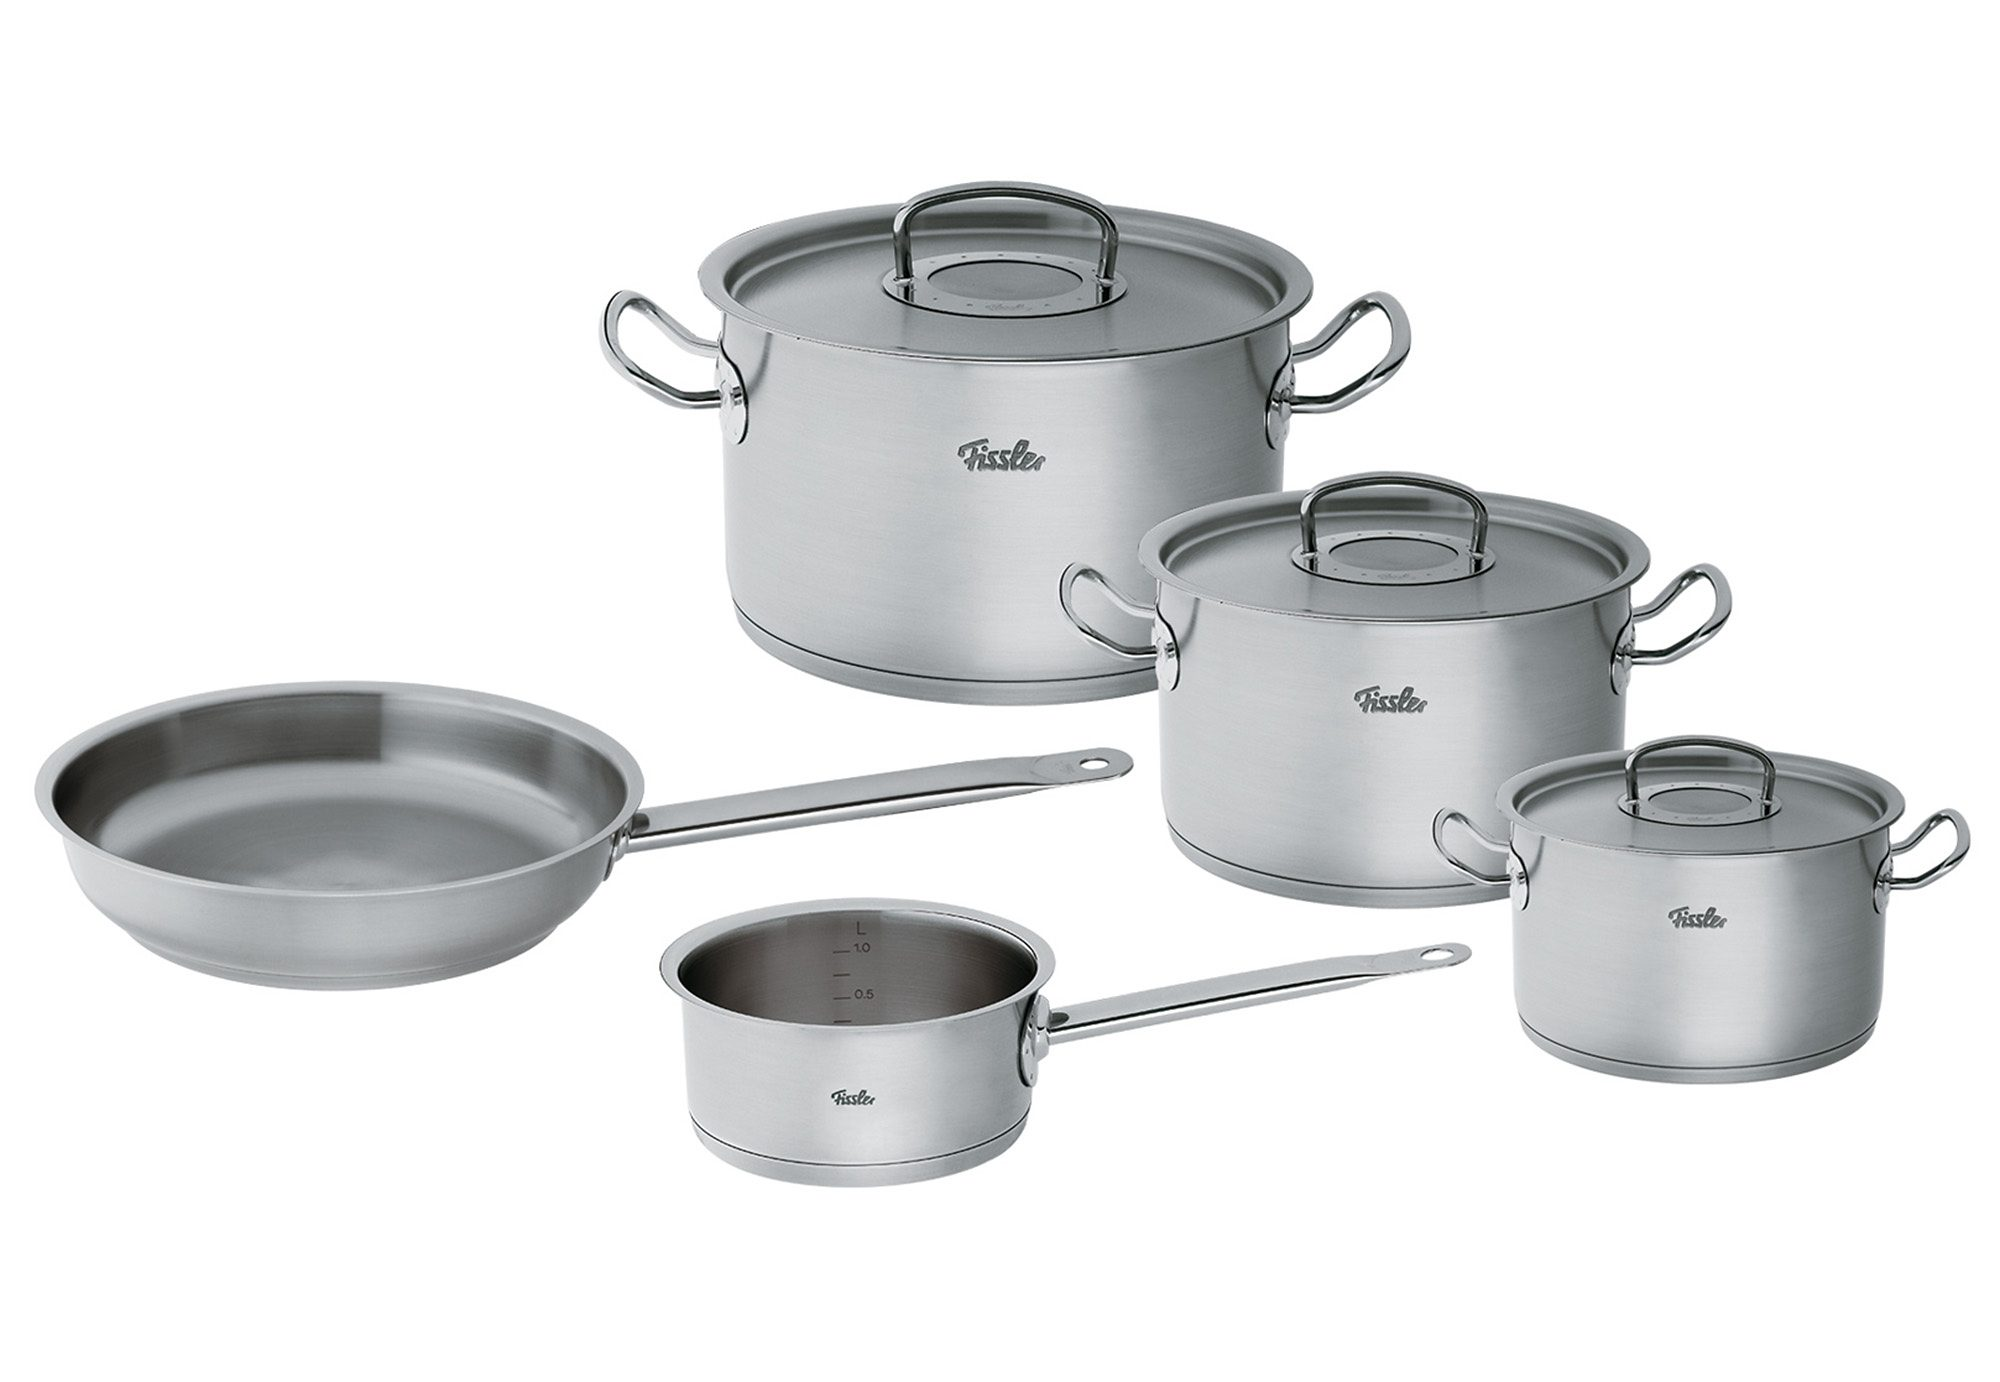 Topf-Set, Edelstahl 18/10, »orginal-profi collection«, Fissler (8tlg.)